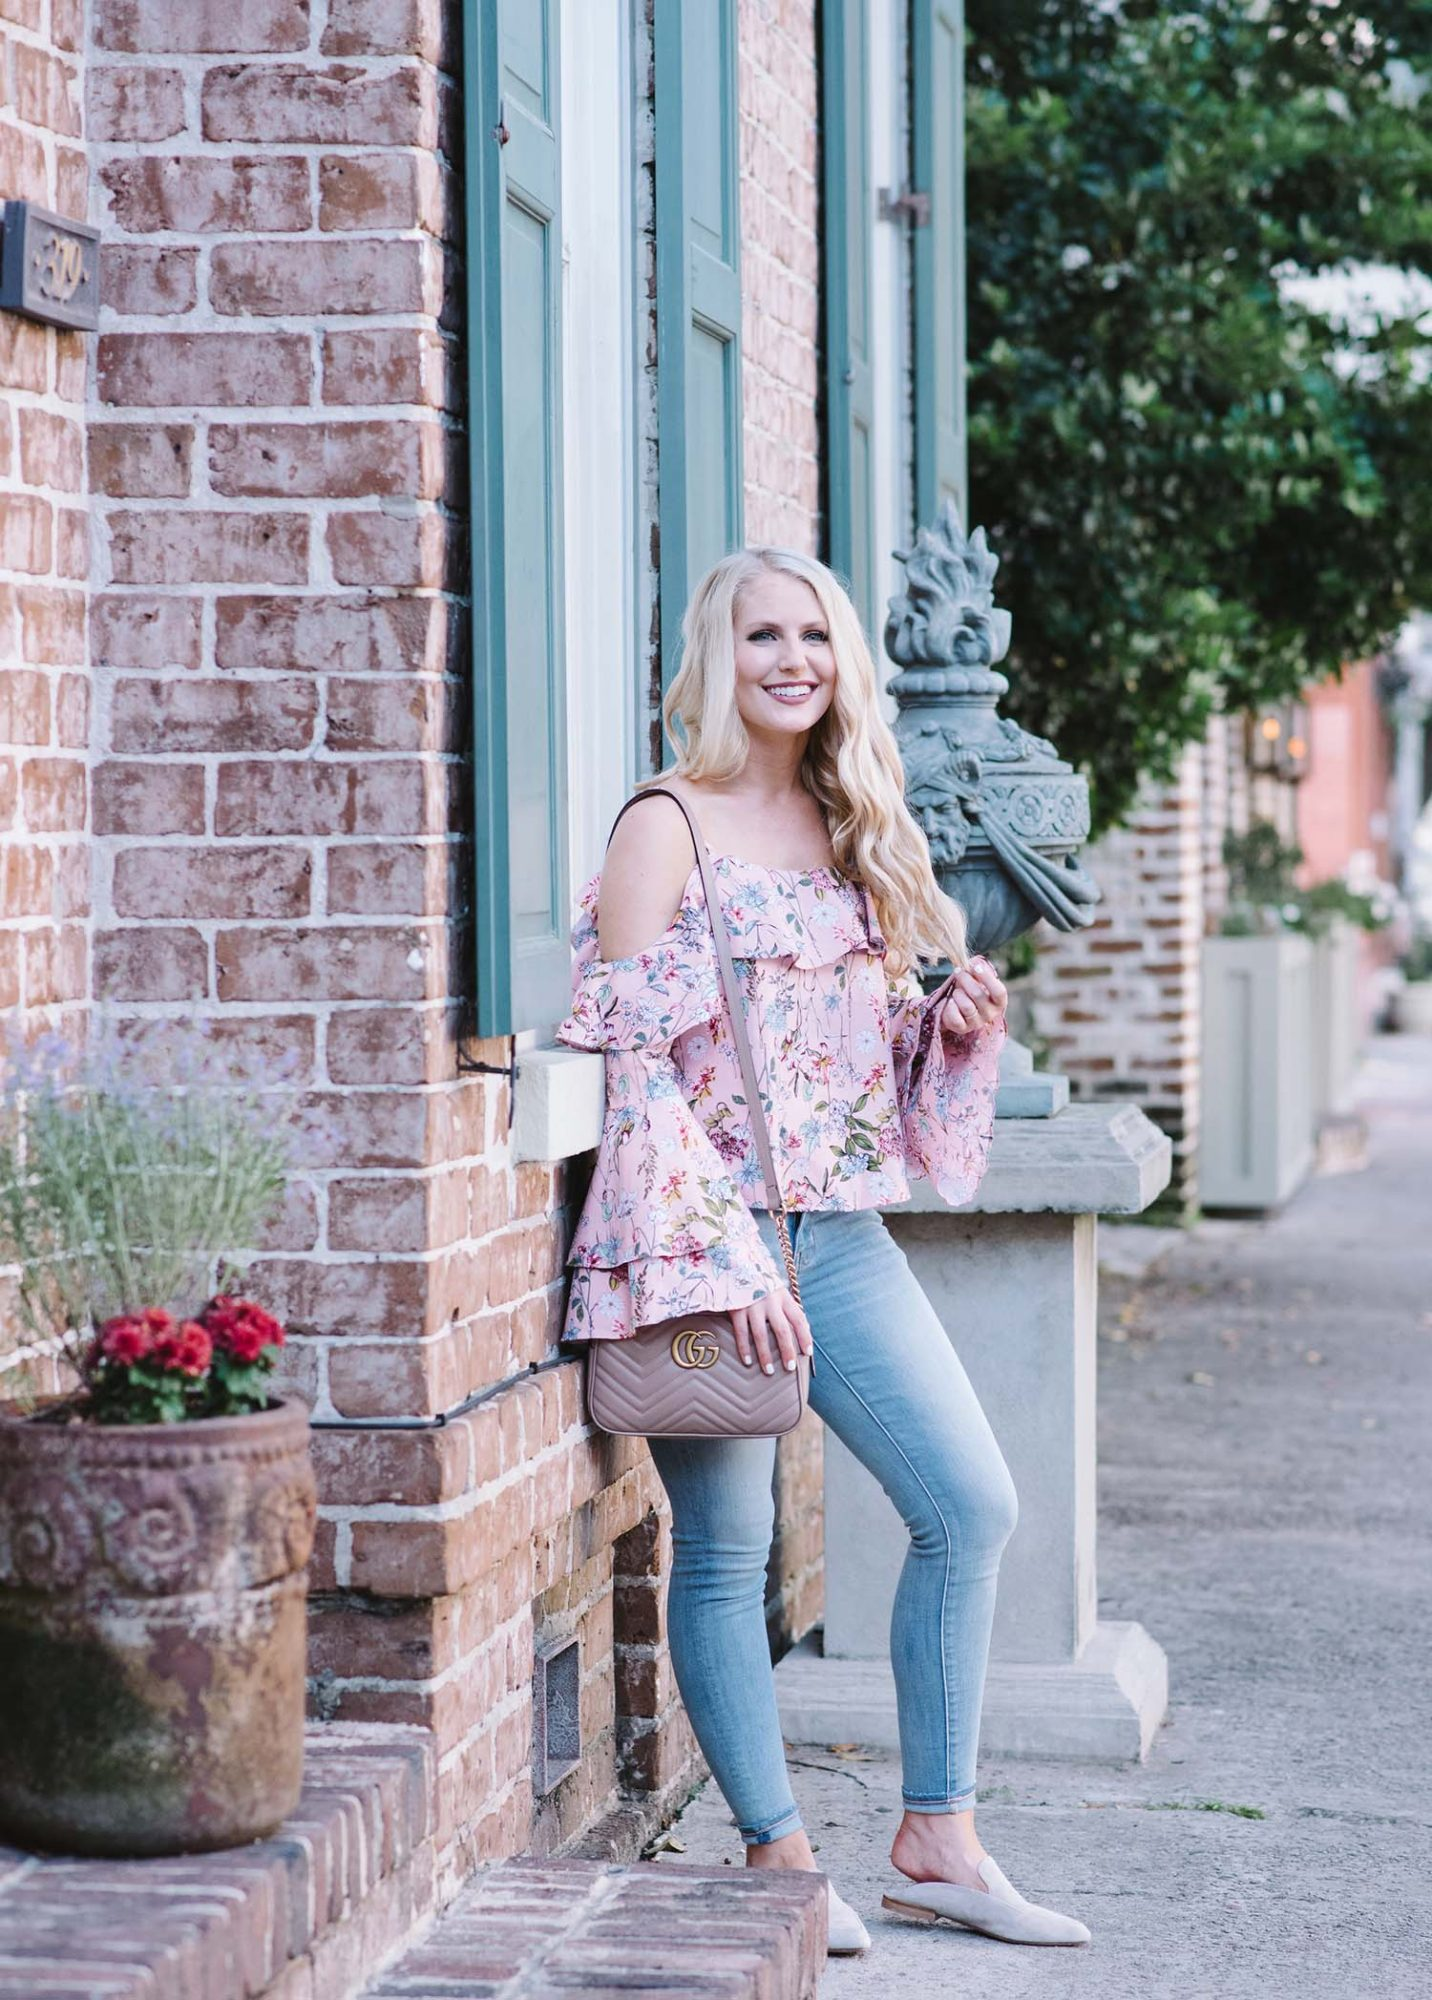 Floral Poplin Top + Savannah, Georgia Recap